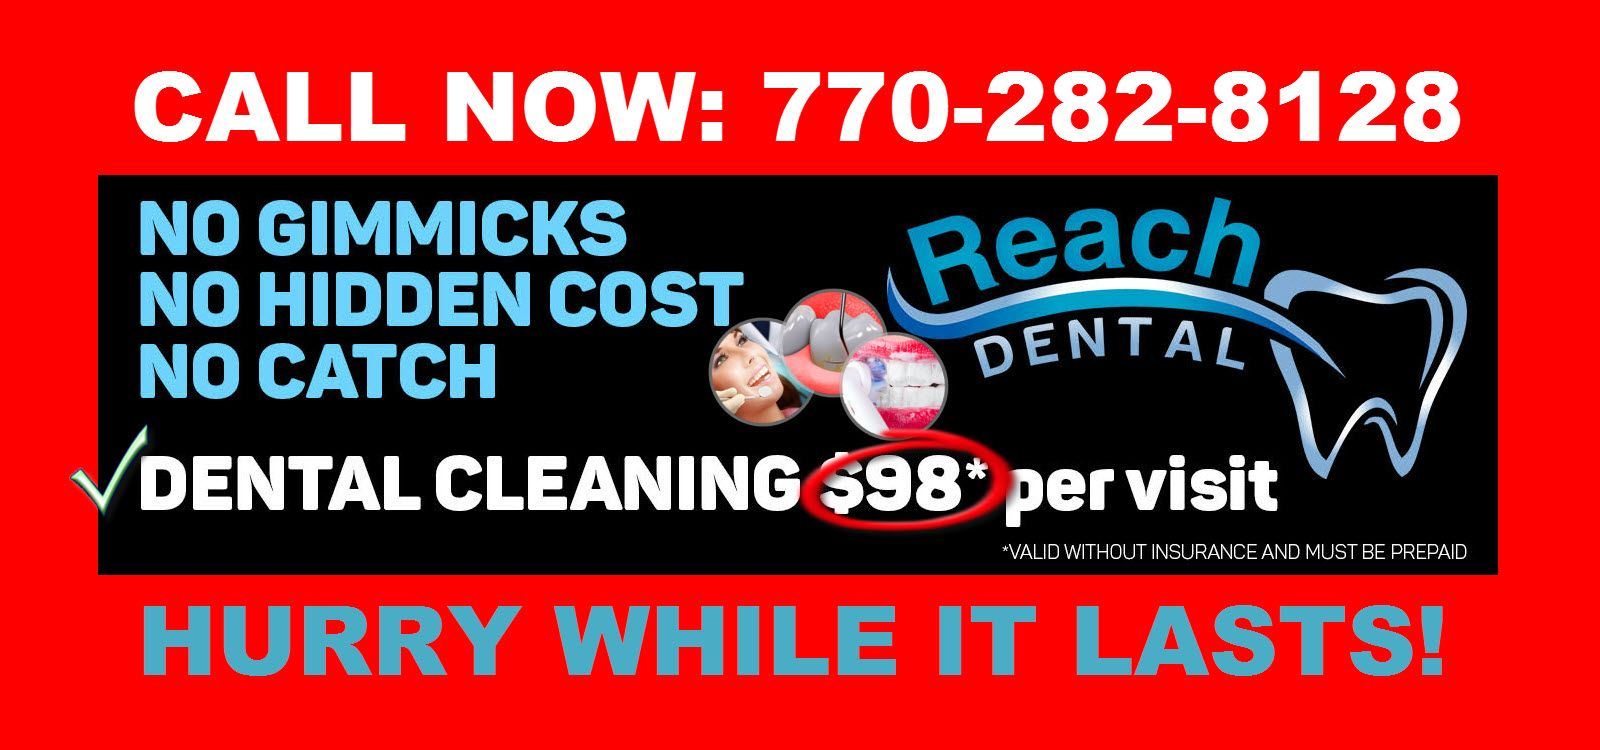 Dental cleaning 98 only per visit hurry httpwww